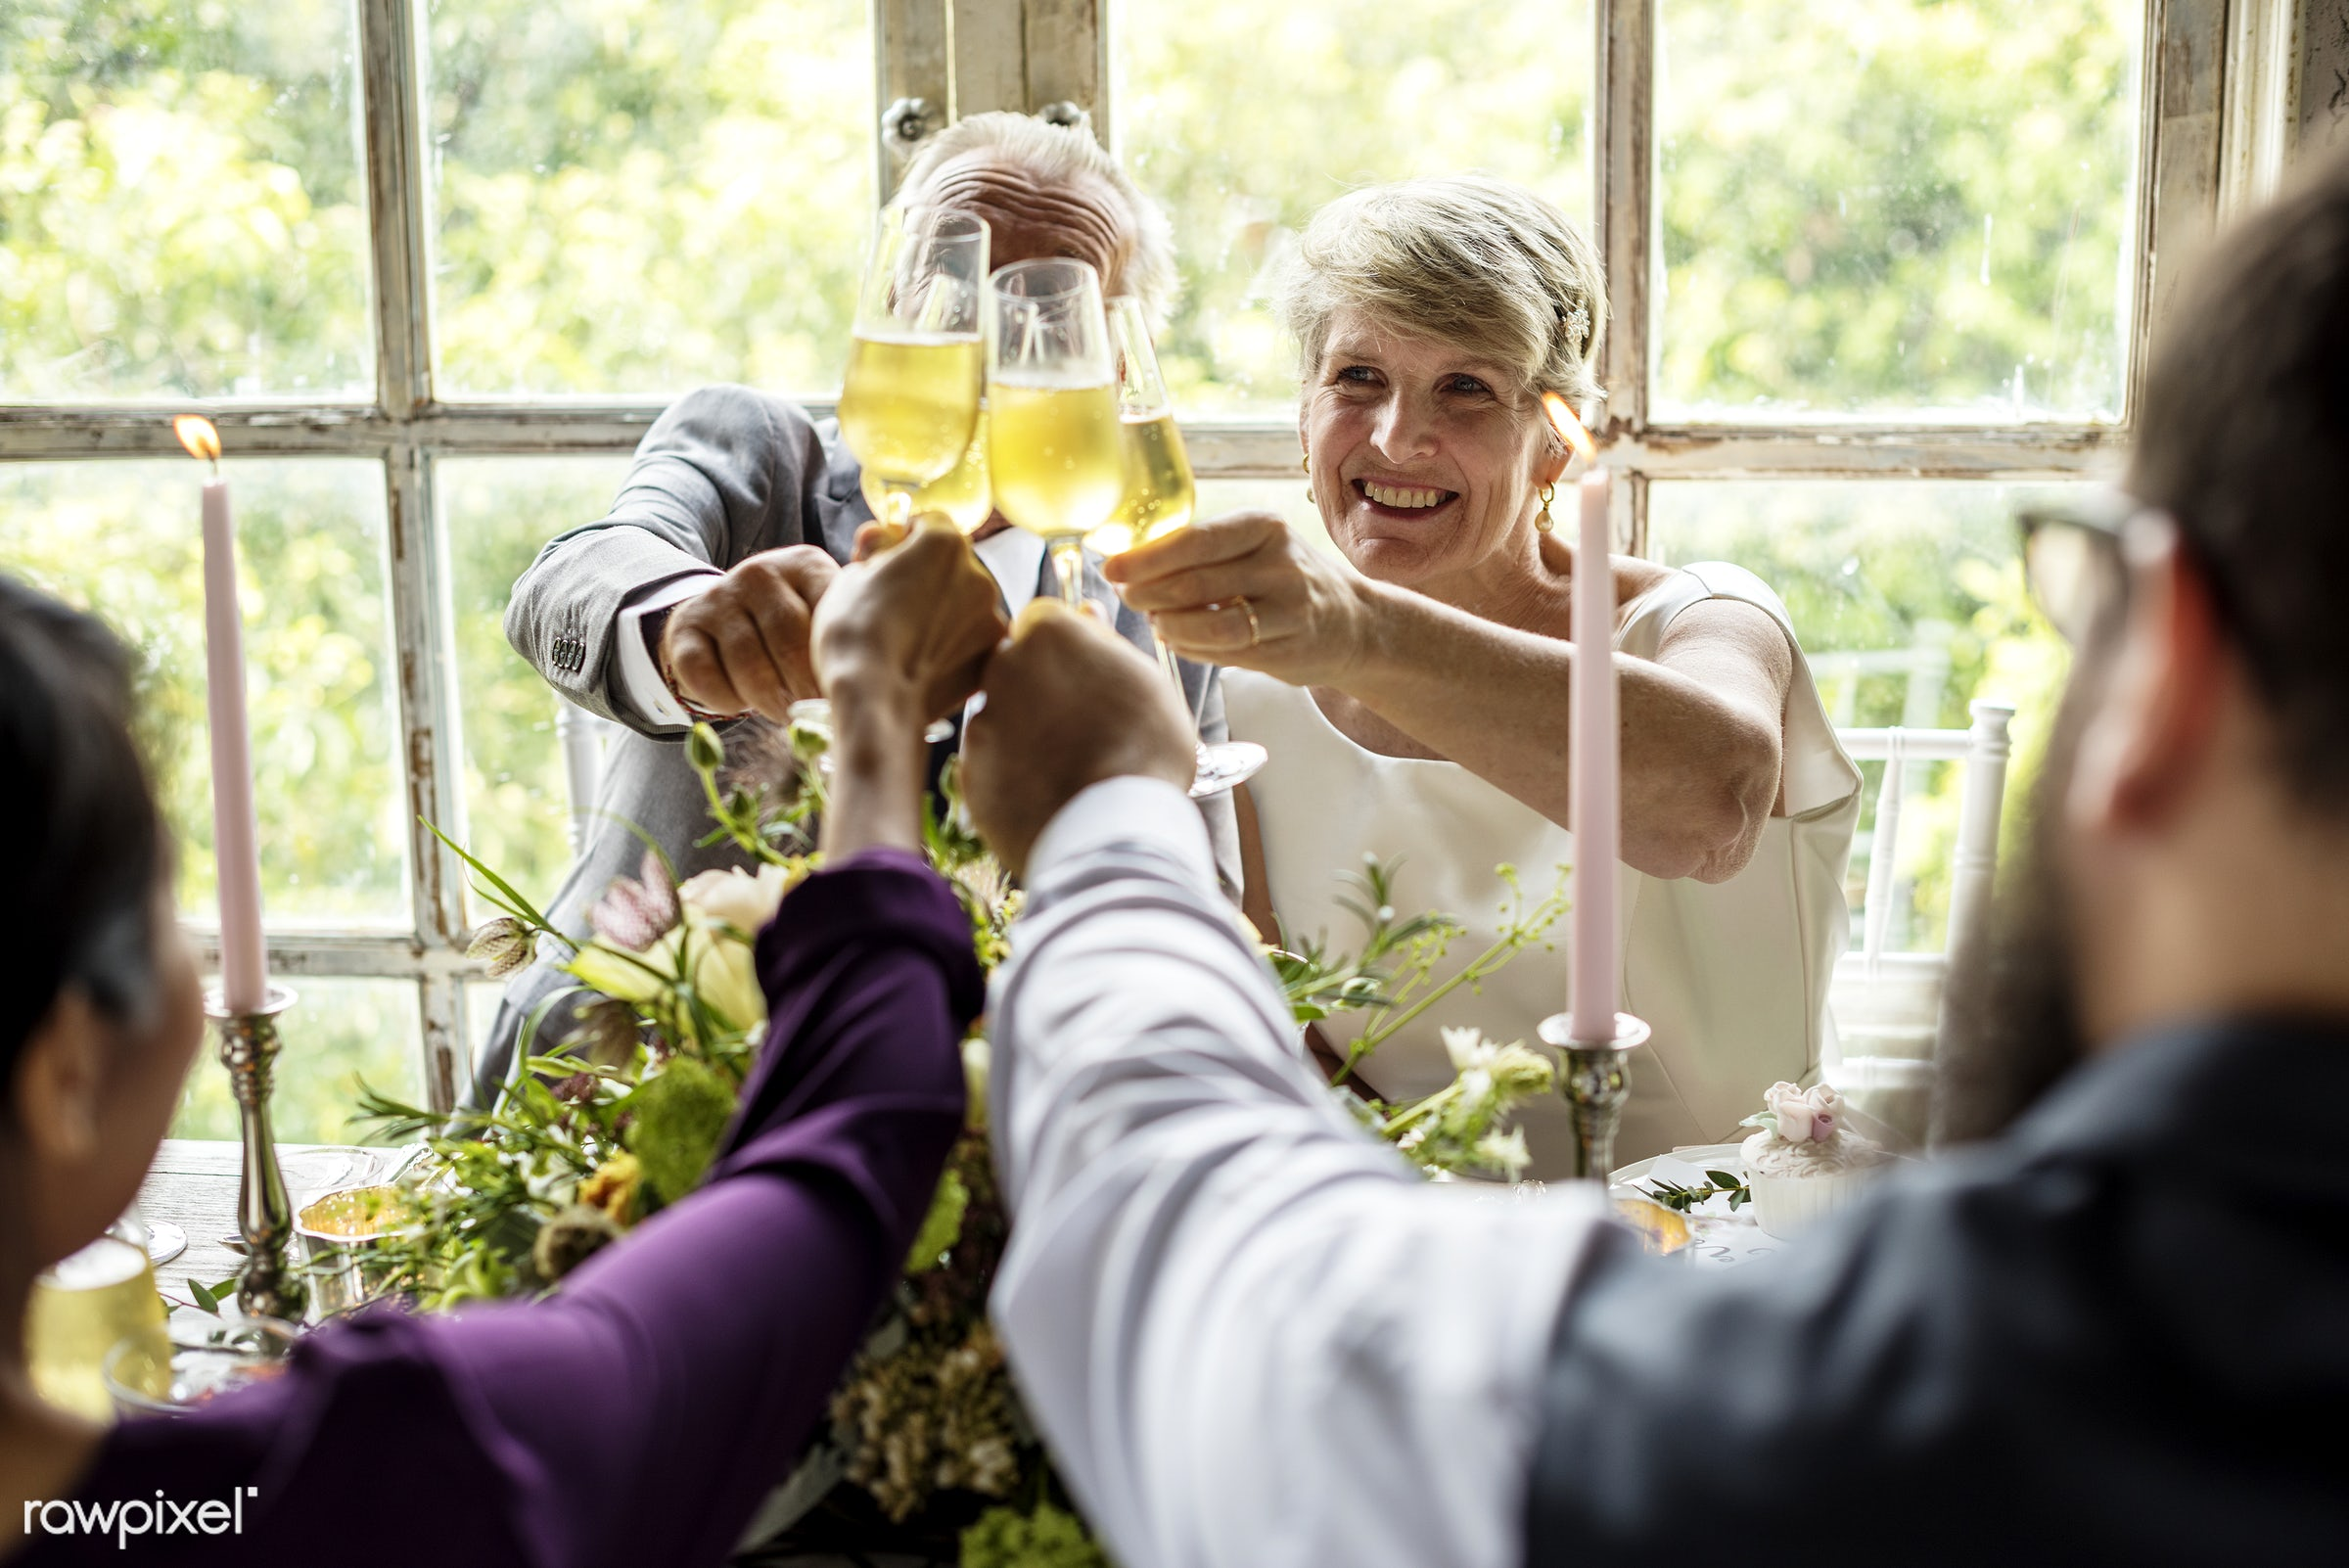 Bridge and groom wedding day - smiling, cheerful, enjoying, fun, happiness, old, elderly, senior, table, toast, champagne,...